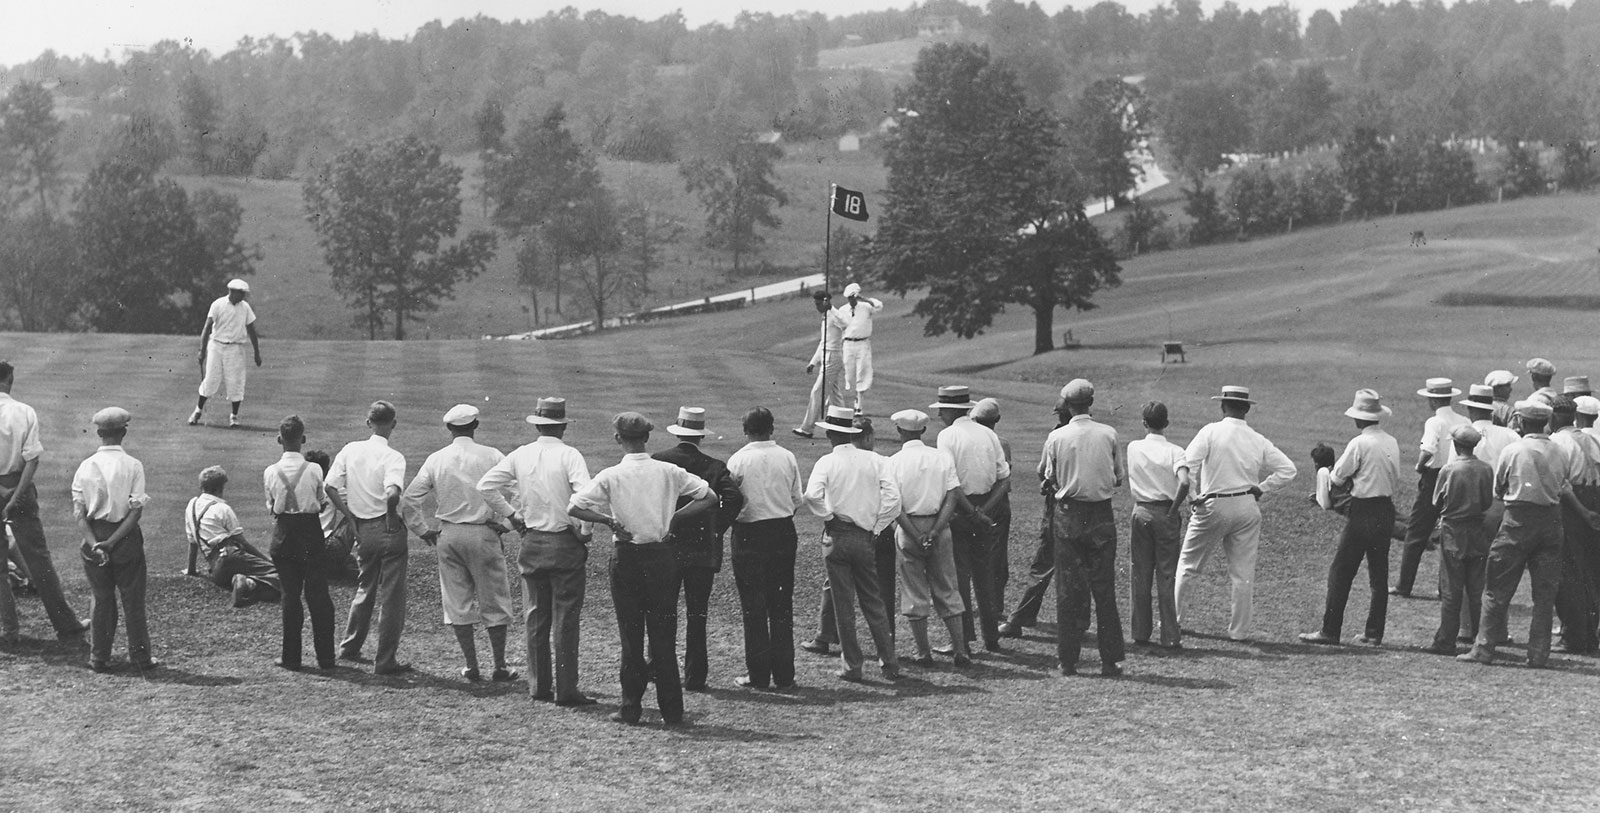 Historic Image of Donald Ross Golf Course circa 1917 at French Lick Springs Hotel Golf Course, West Baden Springs Hotel, 1902, Member of Historic Hotels of America, in West Baden Springs, Indiana, Golf